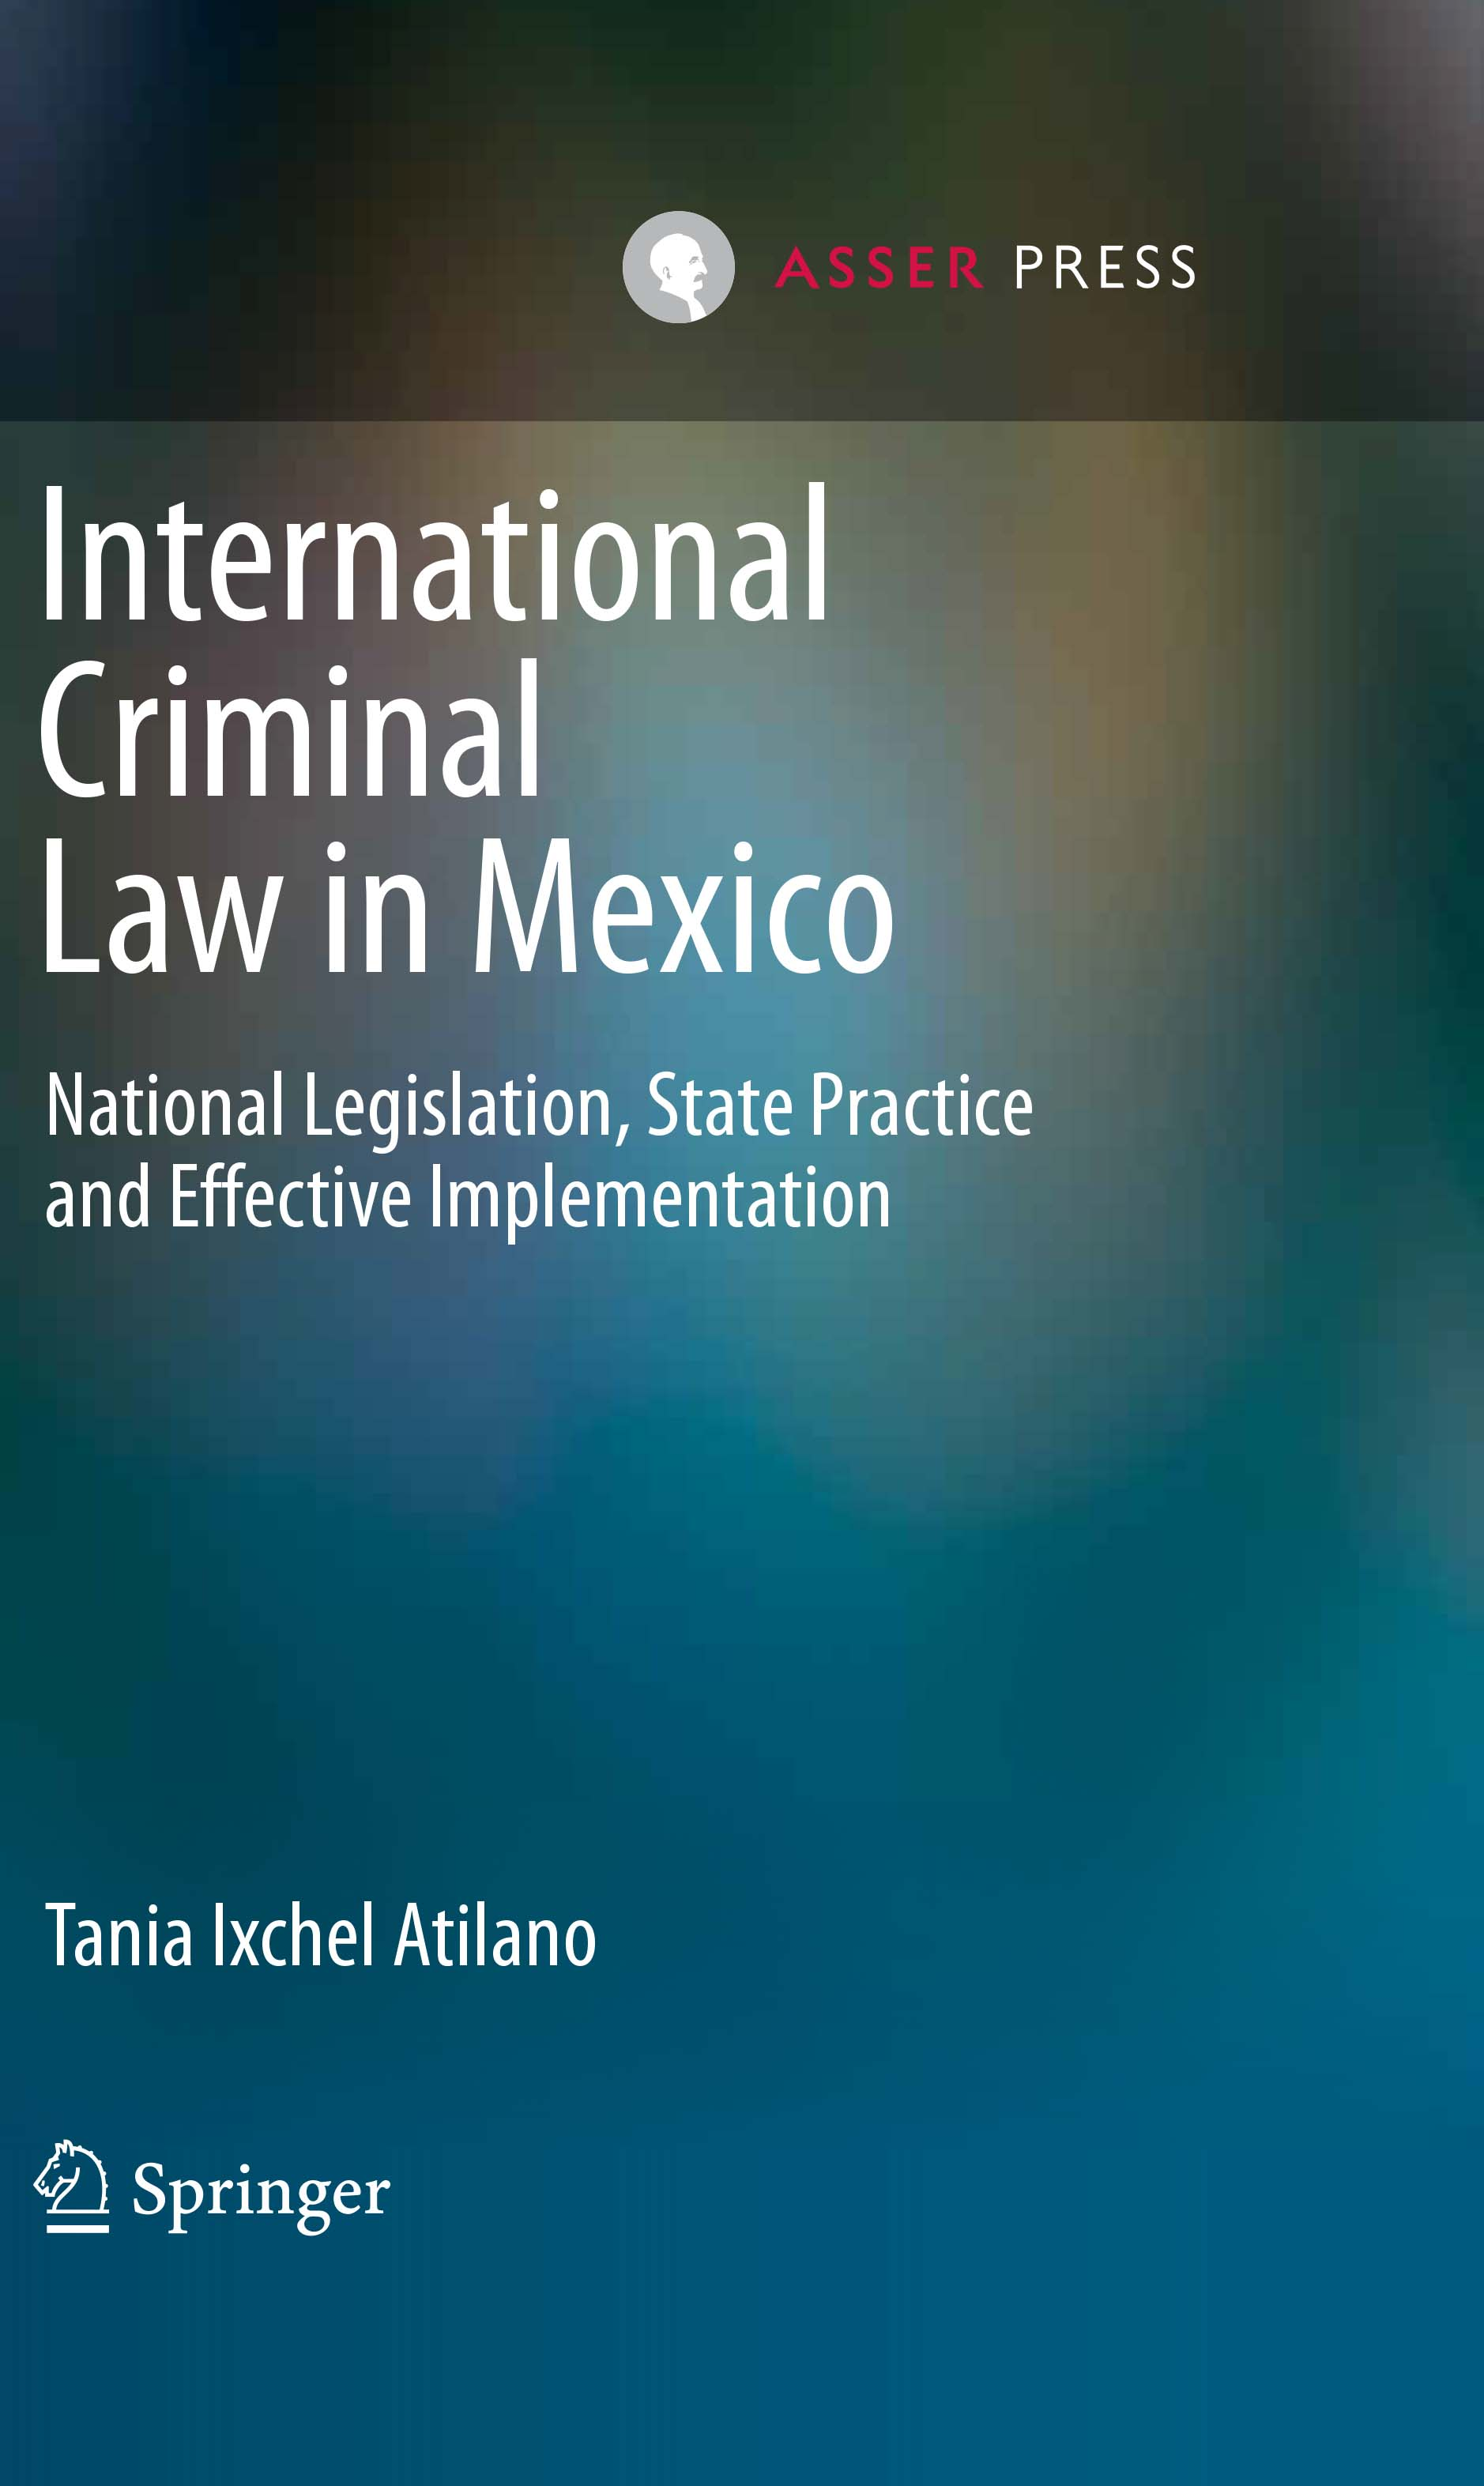 International Criminal Law in Mexico - National Legislation, State Practice and Effective Implementation